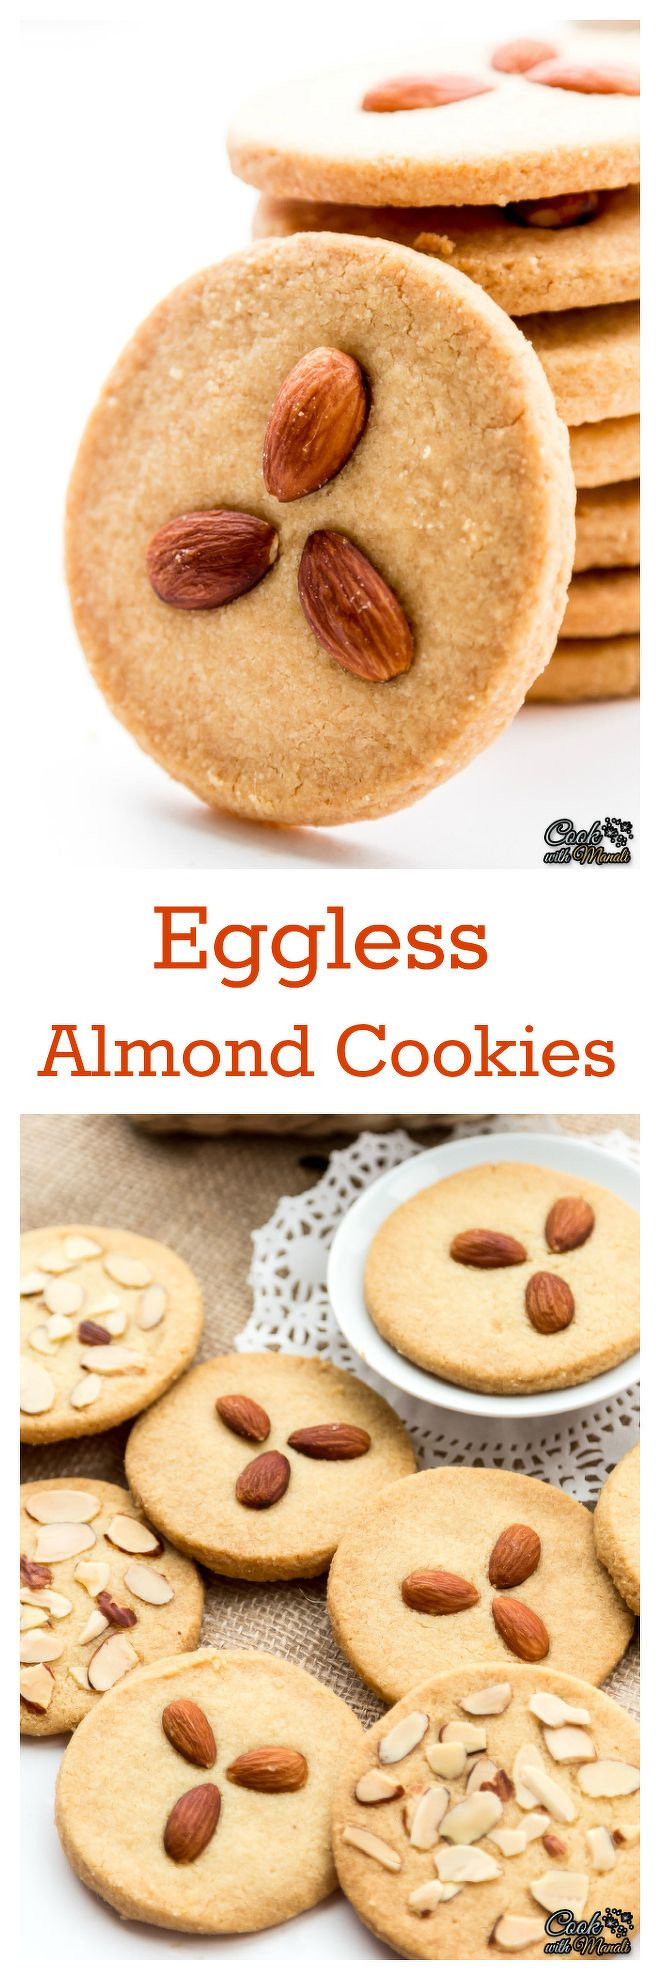 Crispy & Buttery Indian style Eggless Almond Cookies. So good with coffee or tea! Find the recipe on www.cookwithmanali.com